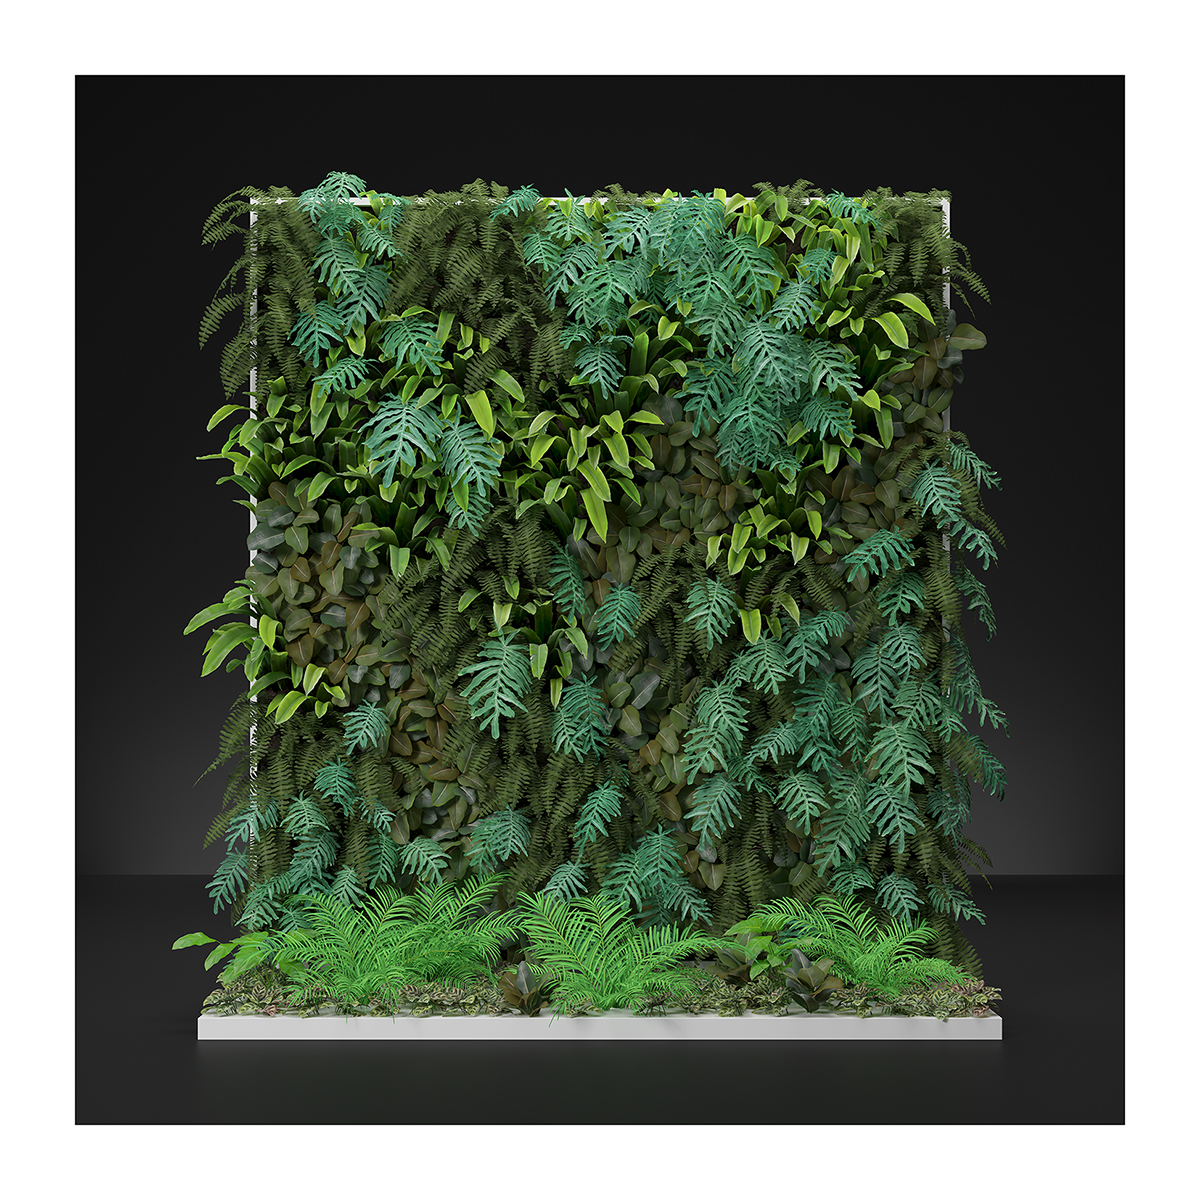 Virtual Vertical Garden N2 002 1 - 2020 - Virtual Vertical Garden N°2